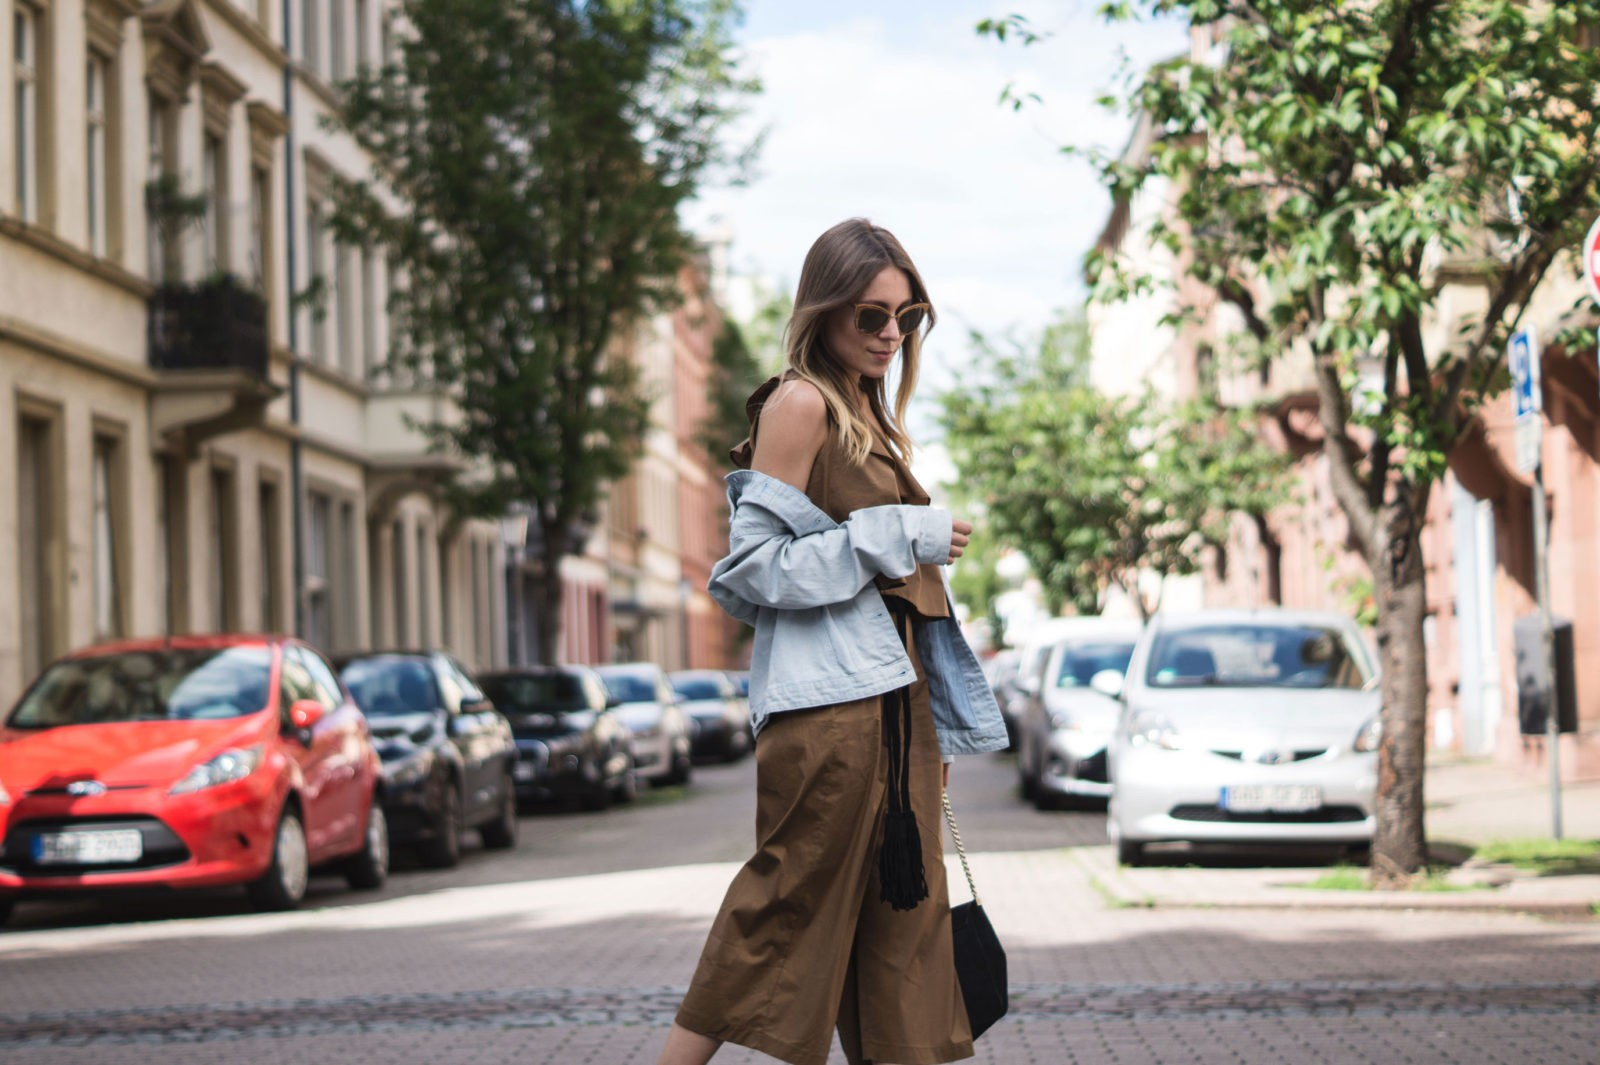 Sariety Modeblog Sarah Czok Fashionblogger Streetstyle Outfit Jumpsuit Obersize Denim Jeansjacke-6